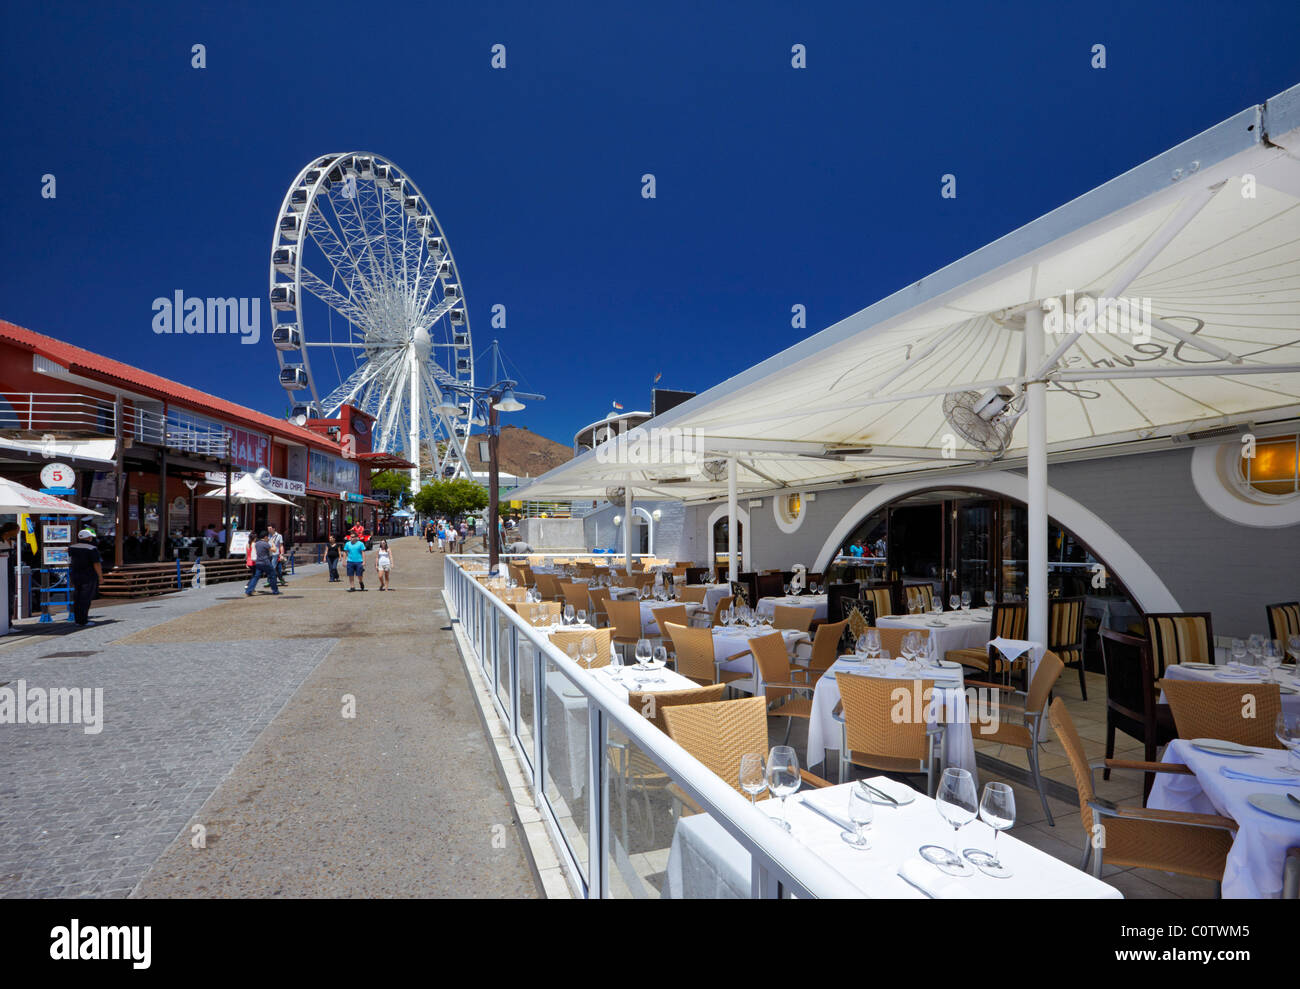 Restaurant and Wheel of Excellence on V&A Waterfront, Cape Town. Western Cape, South Africa. - Stock Image